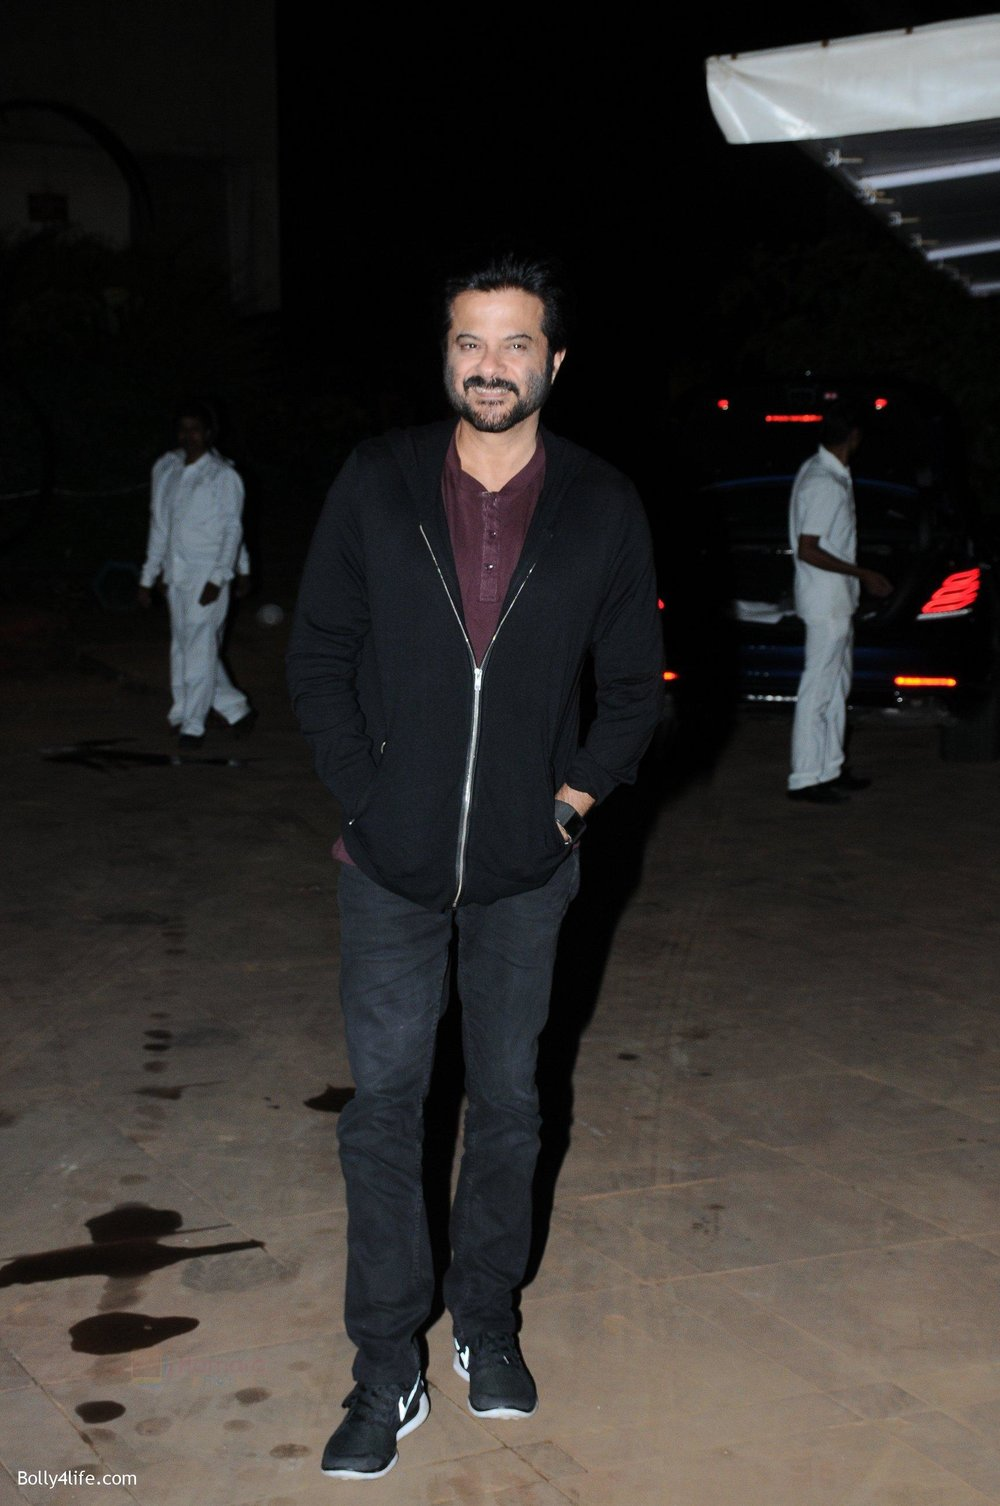 Anil-Kapoor-at-Reema-jain-bday-party-in-Amadeus-NCPA-on-28th-Sept-2016-1107.jpg